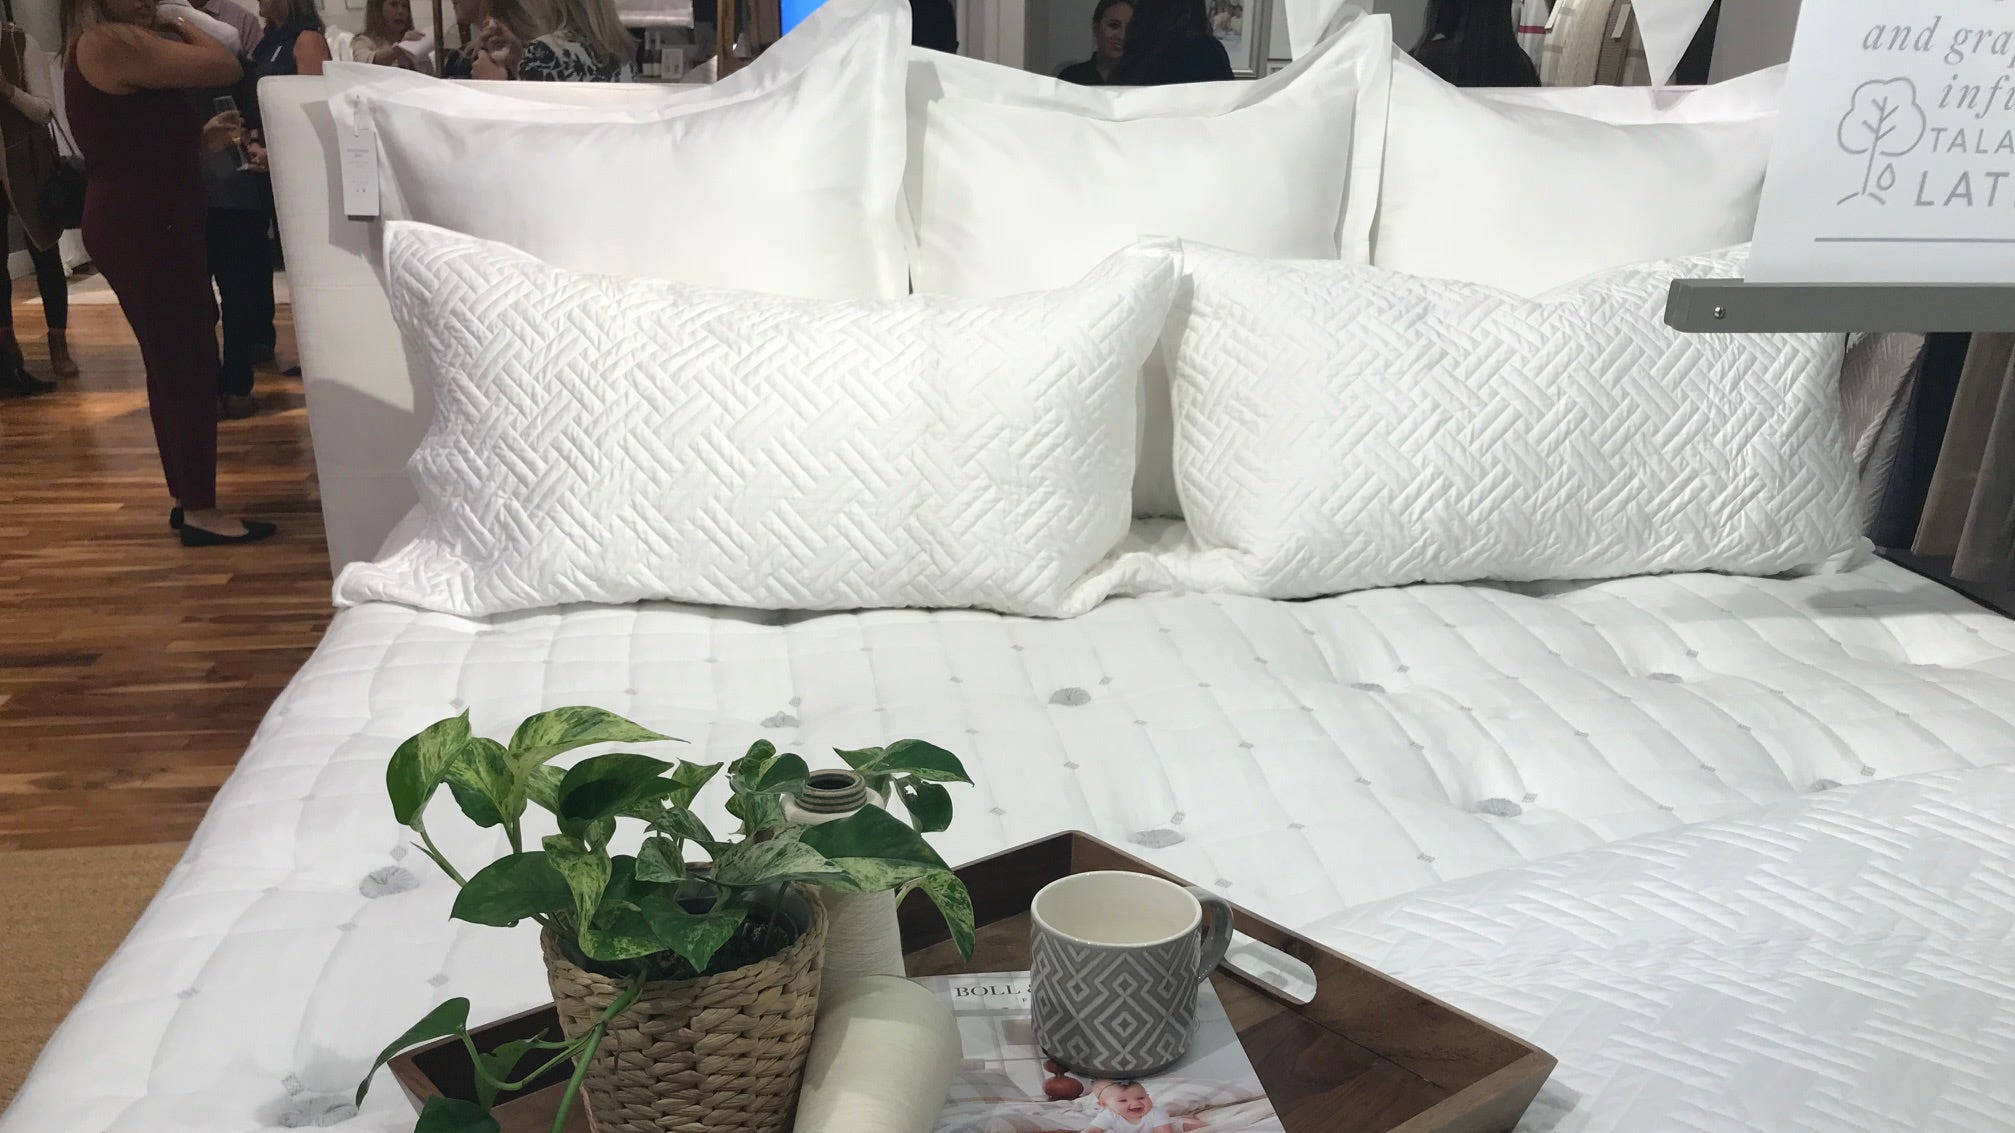 Boll & Branch opens first brick and mortar store